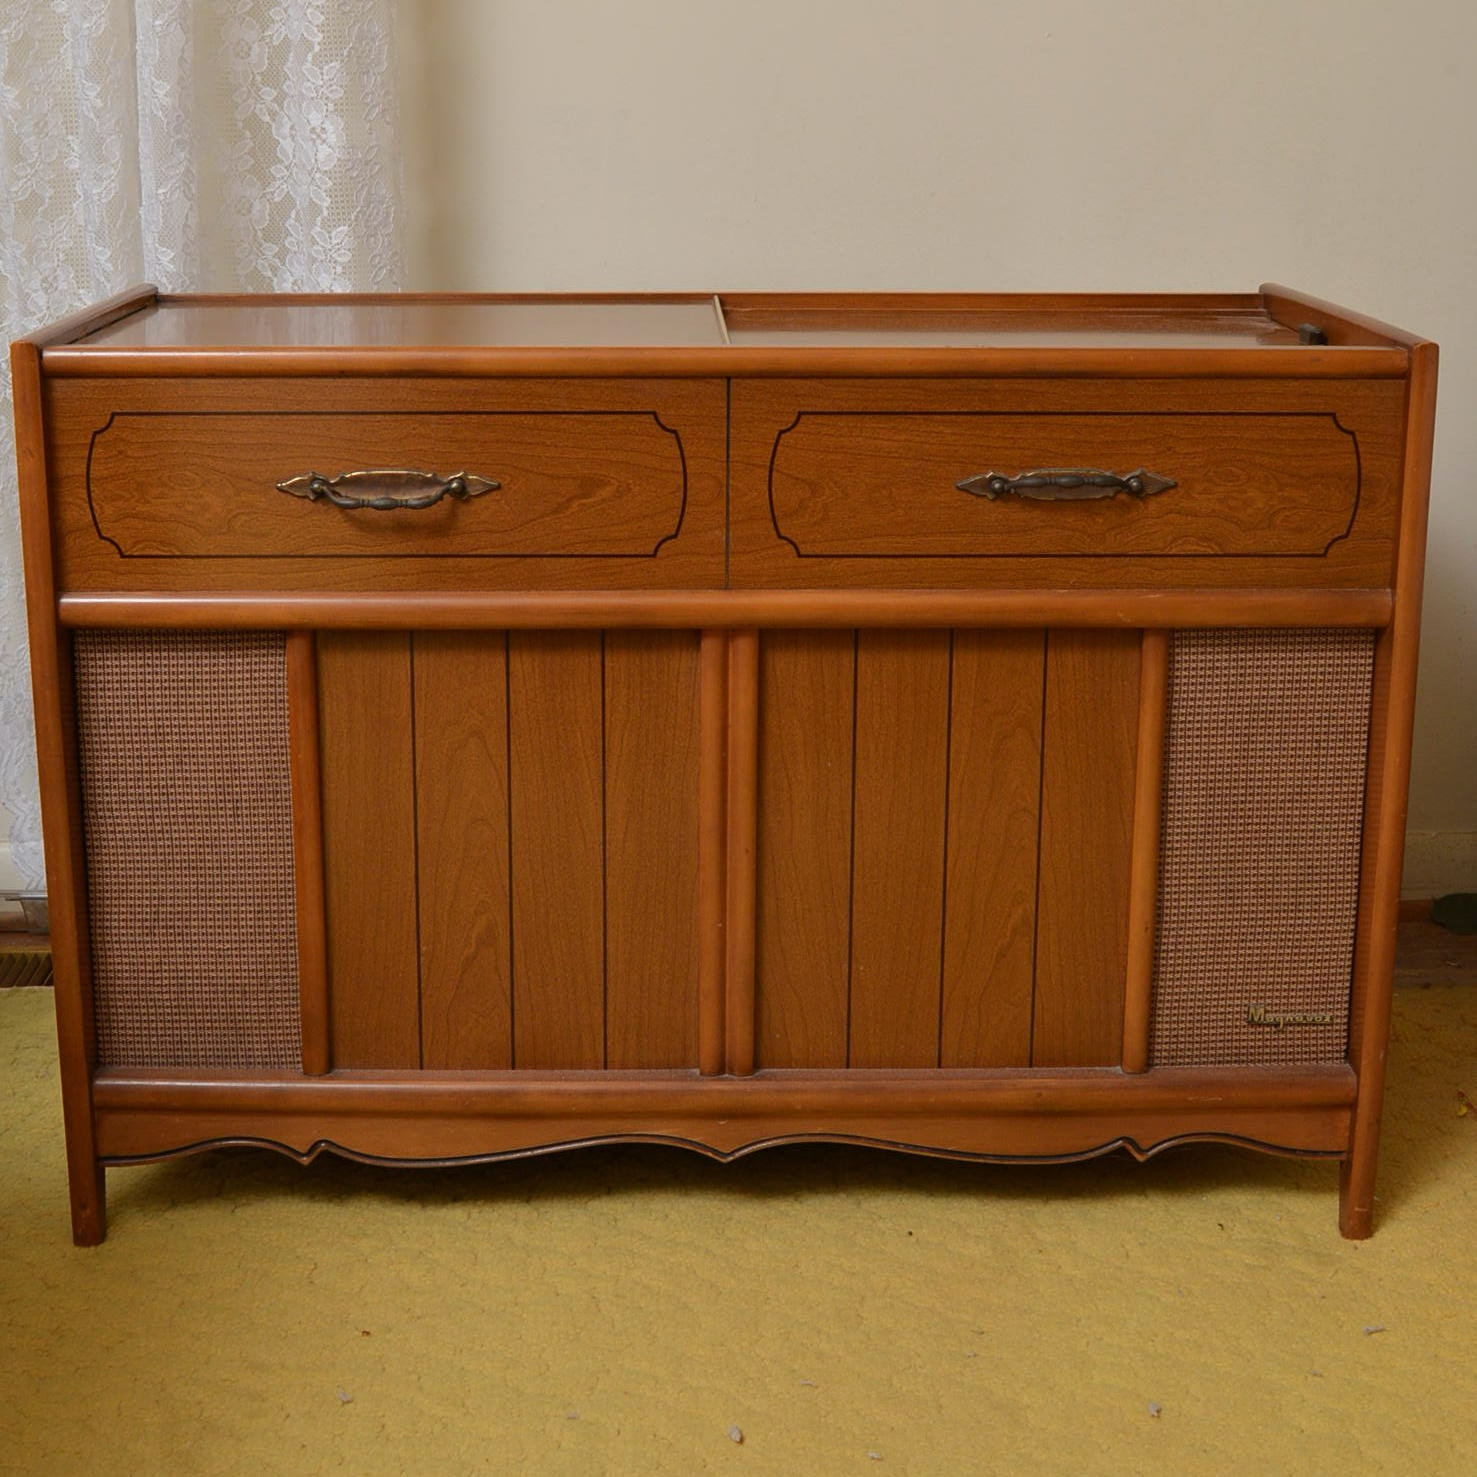 Vintage Turntable Console